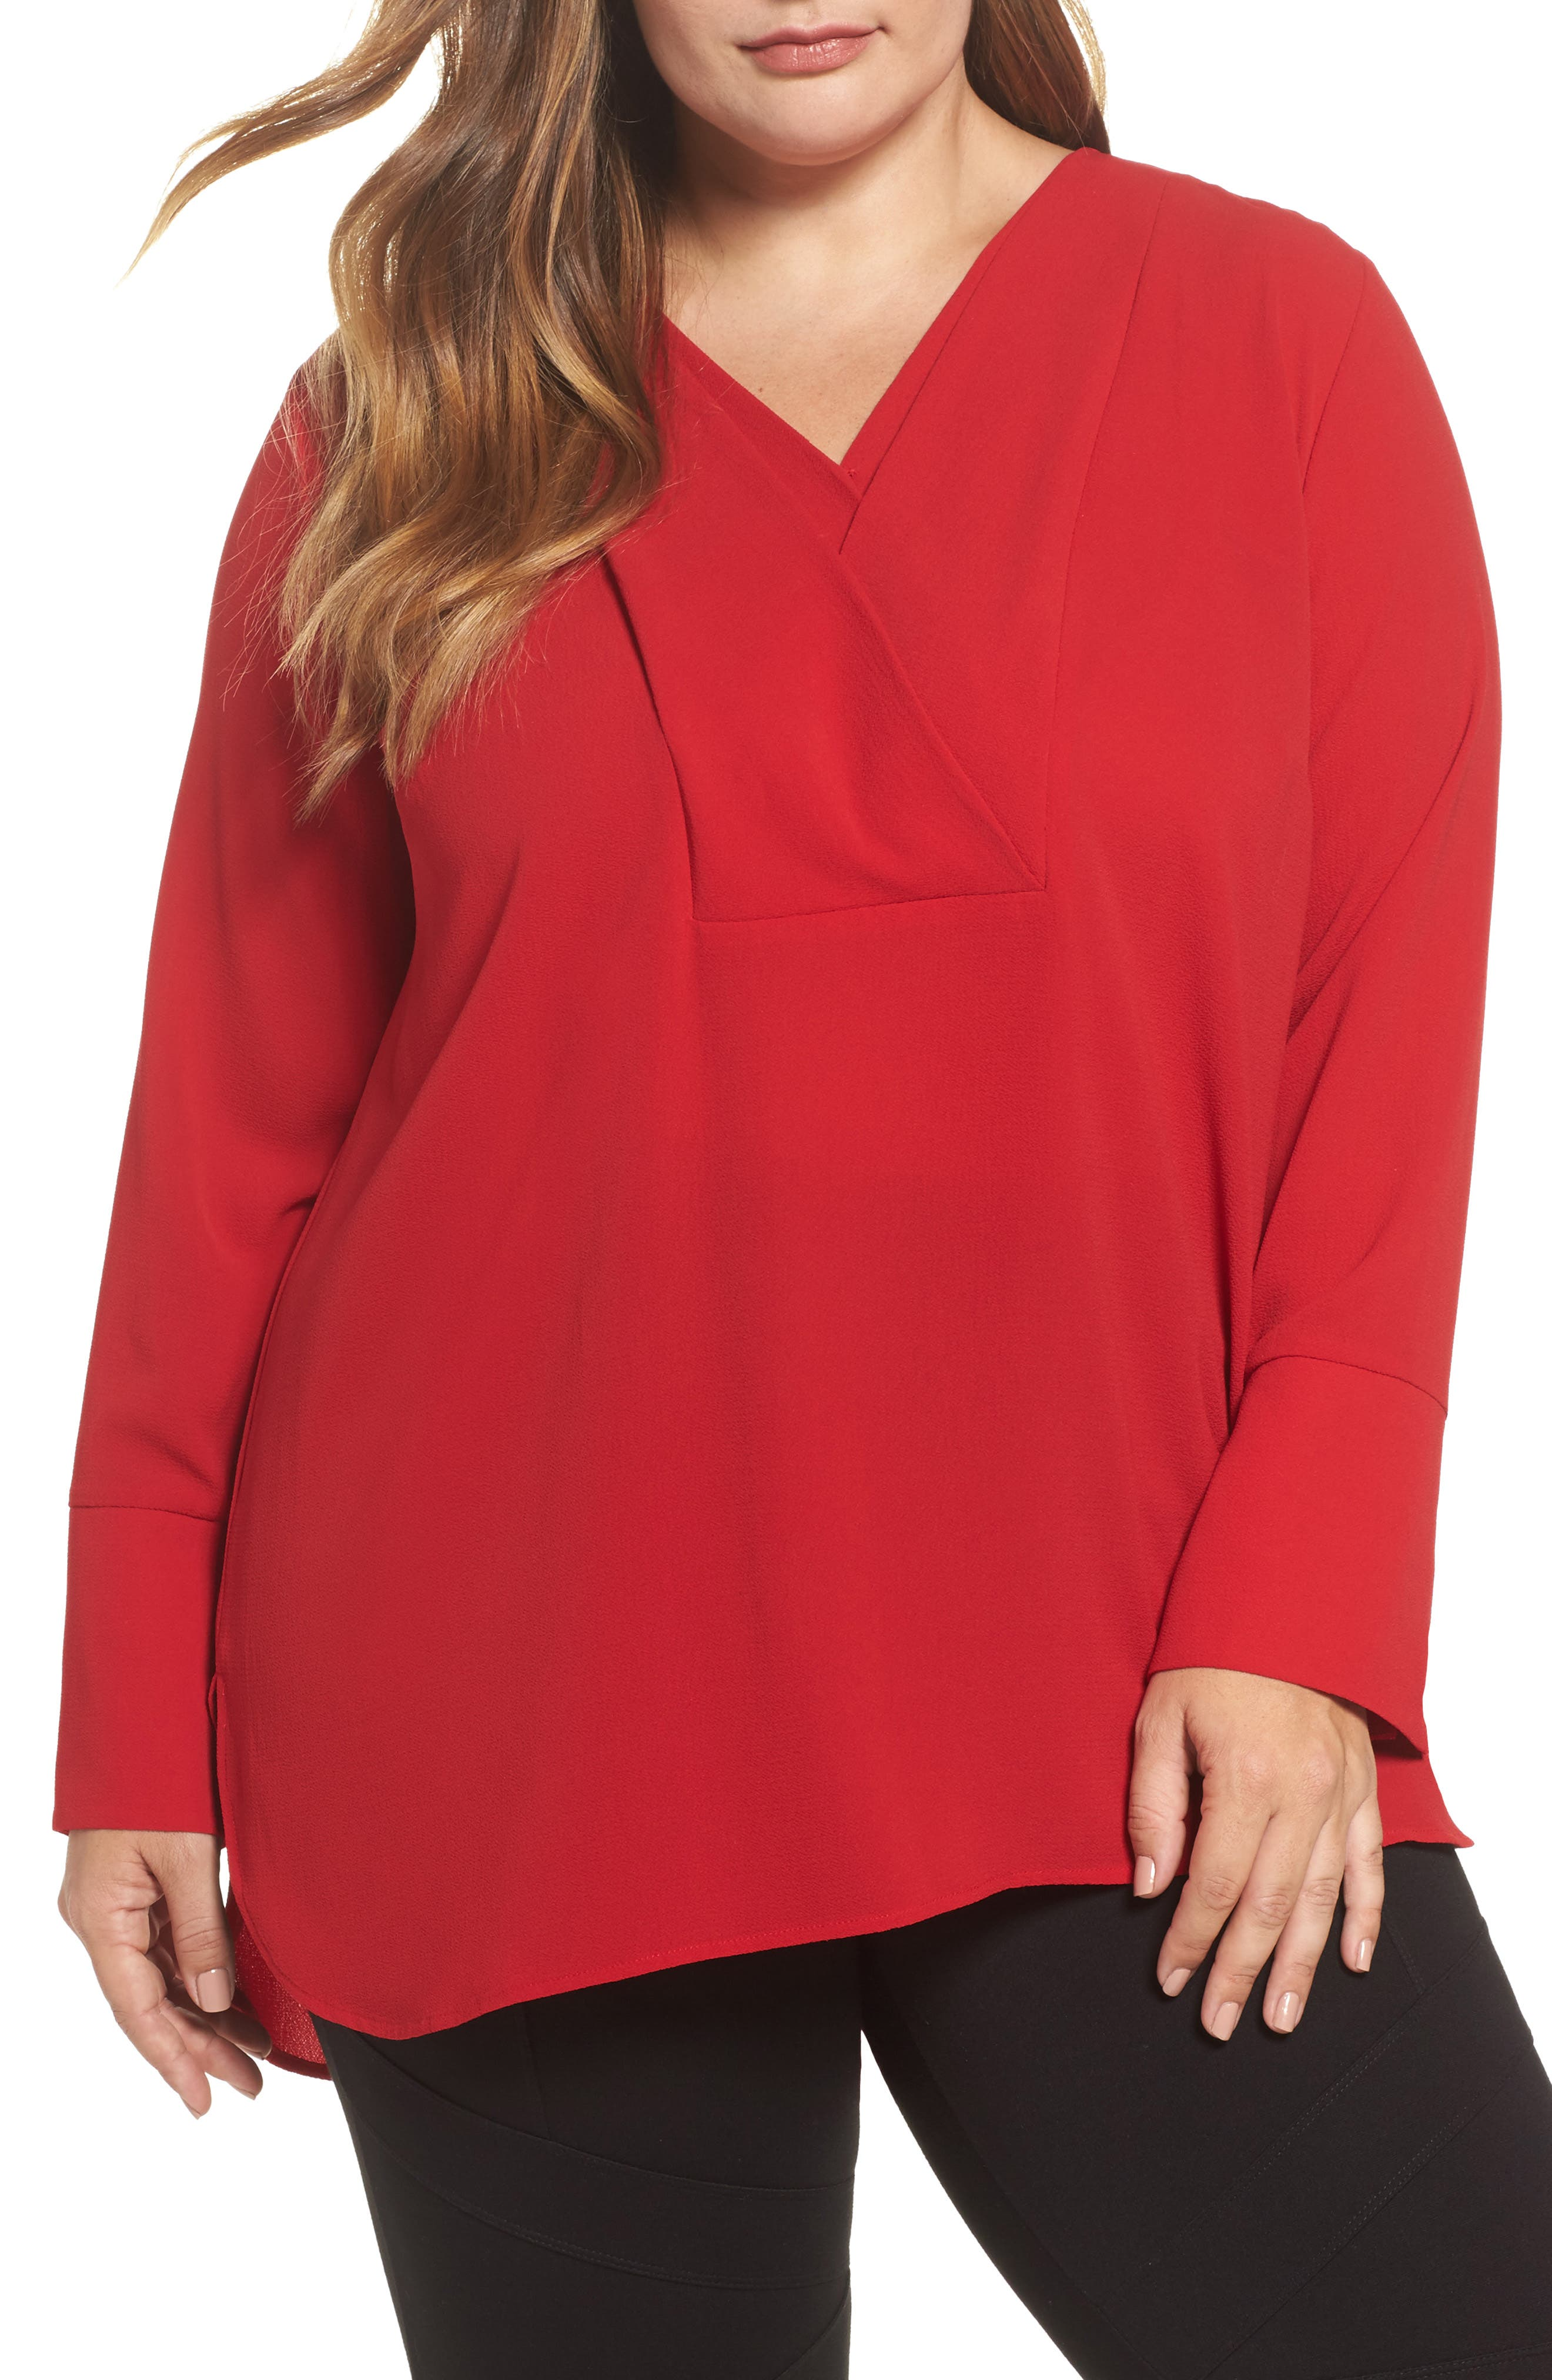 Alternate Image 1 Selected - Vince Camuto Double V-Neck Blouse (Plus Size)